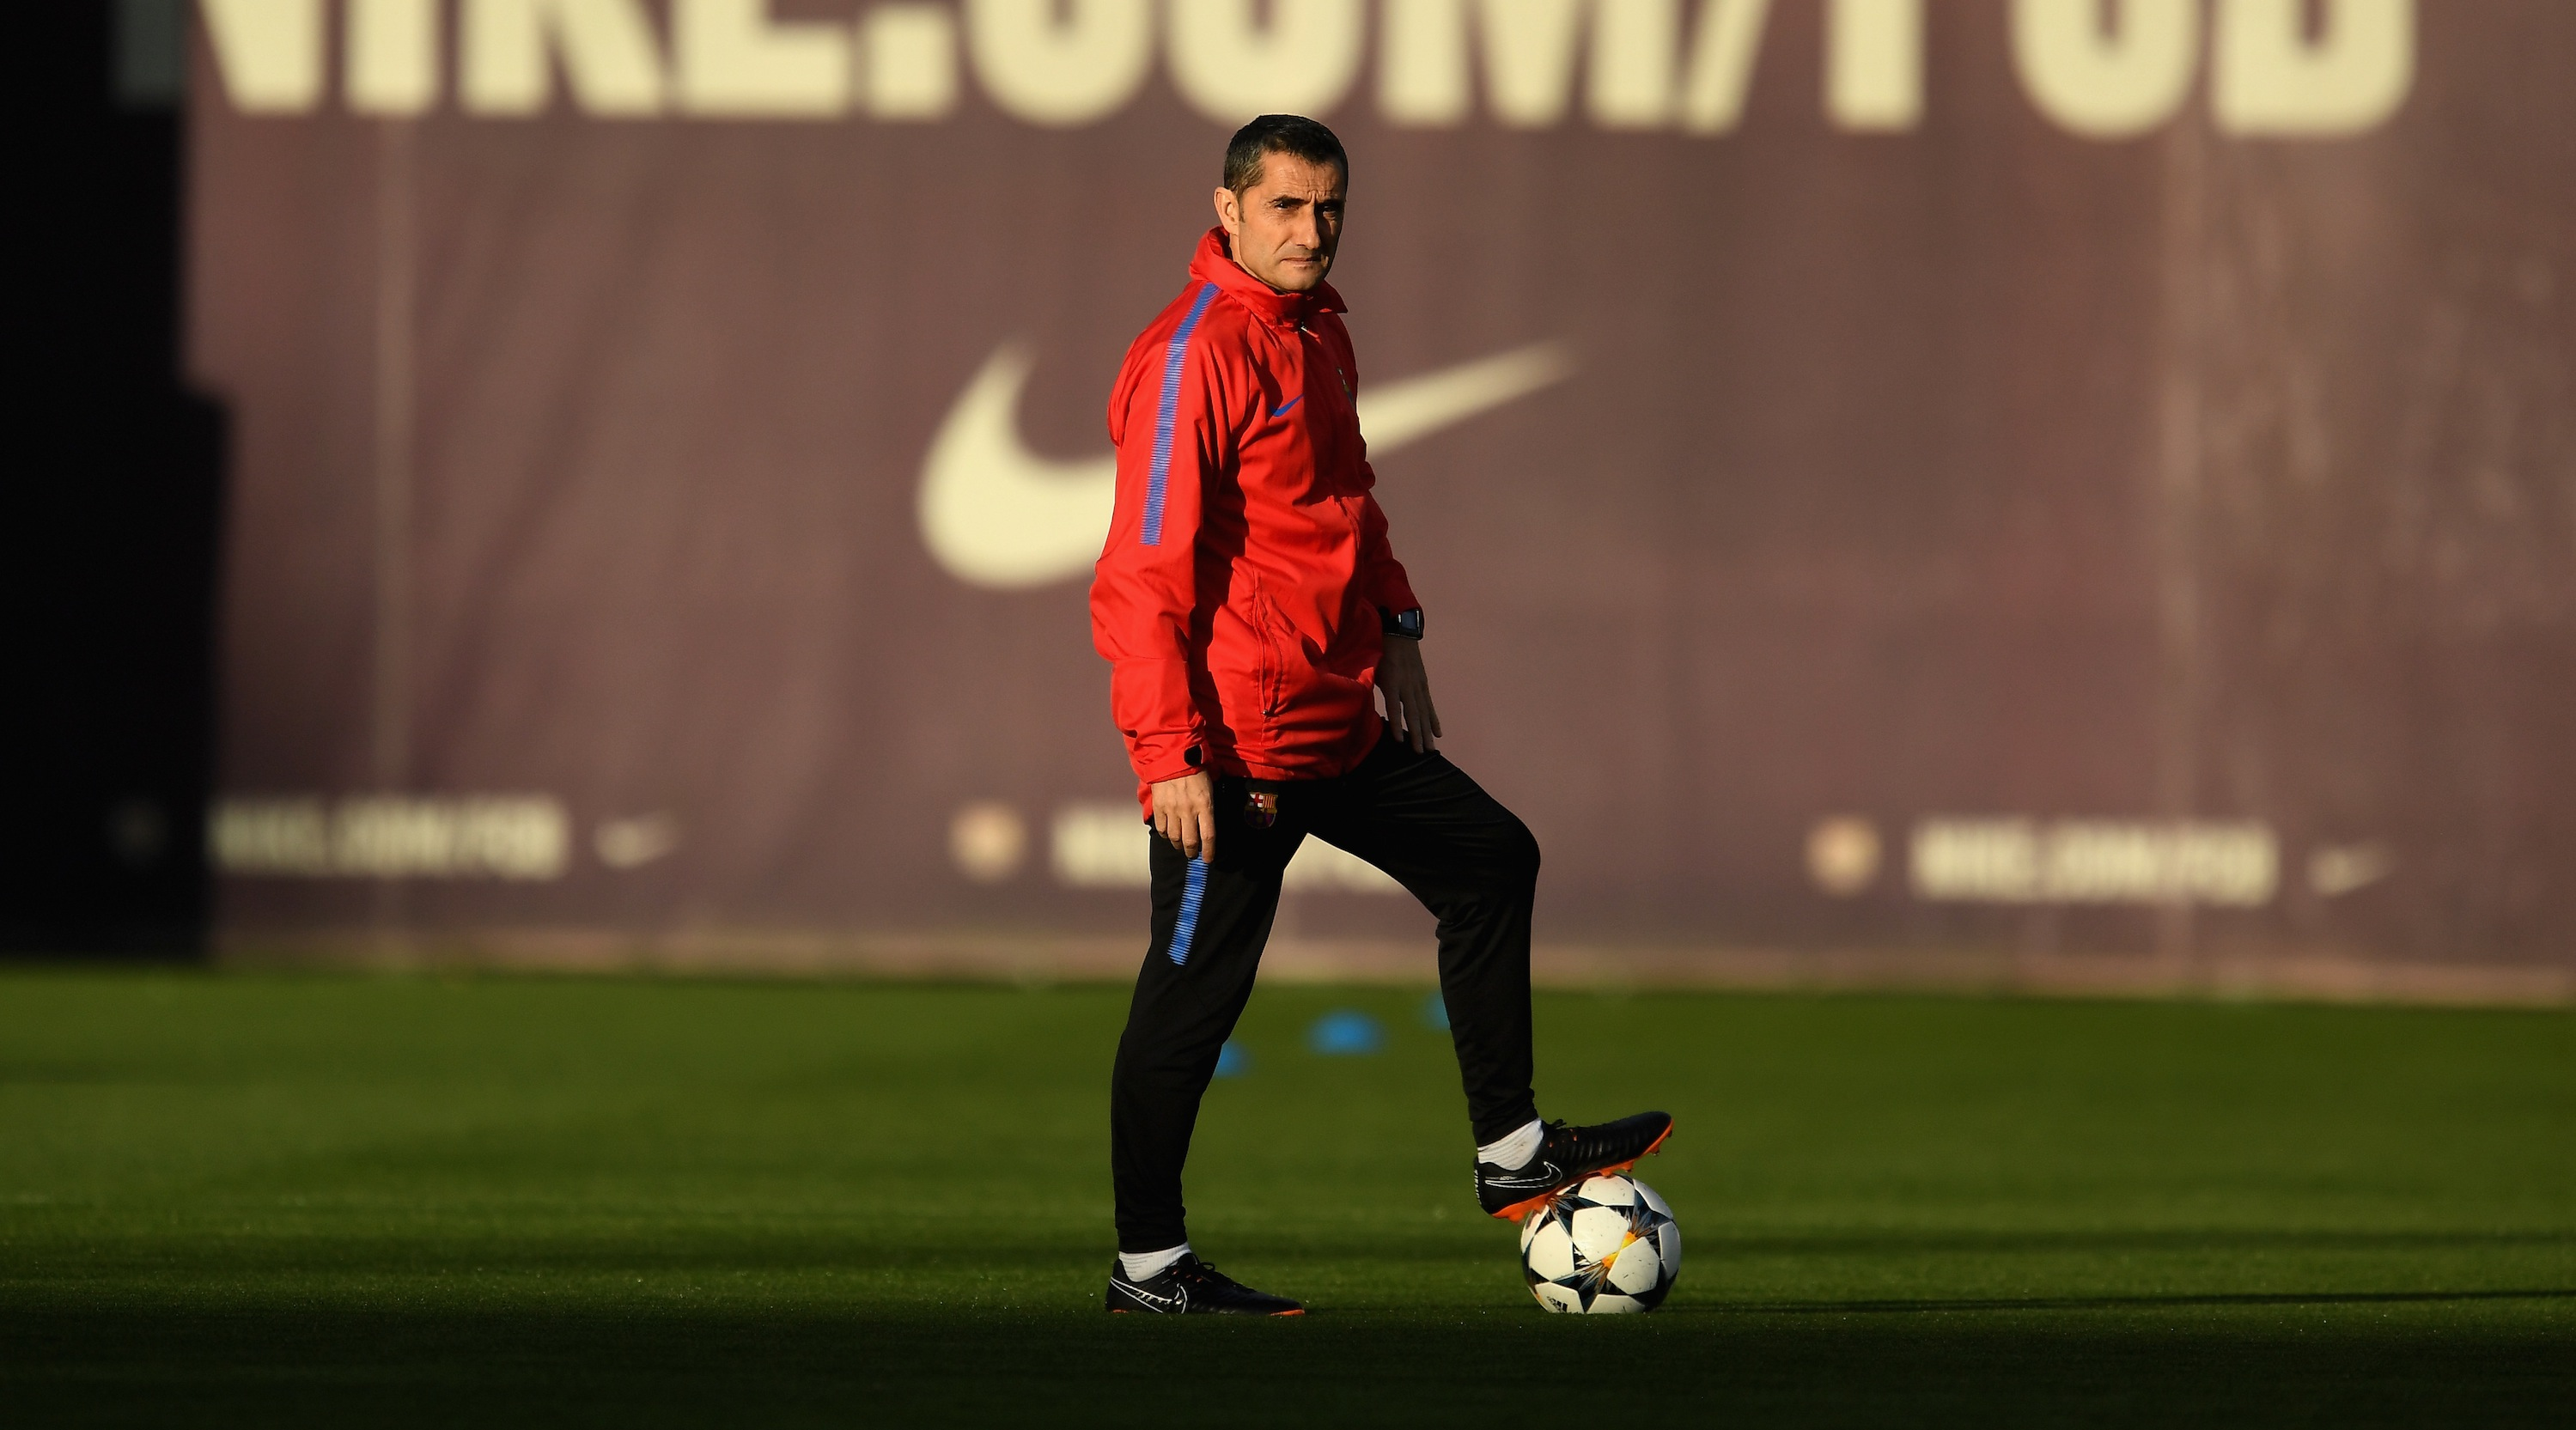 BARCELONA, SPAIN - MARCH 13: Manager of Barcelona, Ernesto Valverde during a Barcelona during a Barcelona training session ahead of their UEFA Champions League Round of 16 match against Chelsea at Nou Camp on March 13, 2018 in Barcelona, Spain. (Photo by David Ramos/Getty Images)